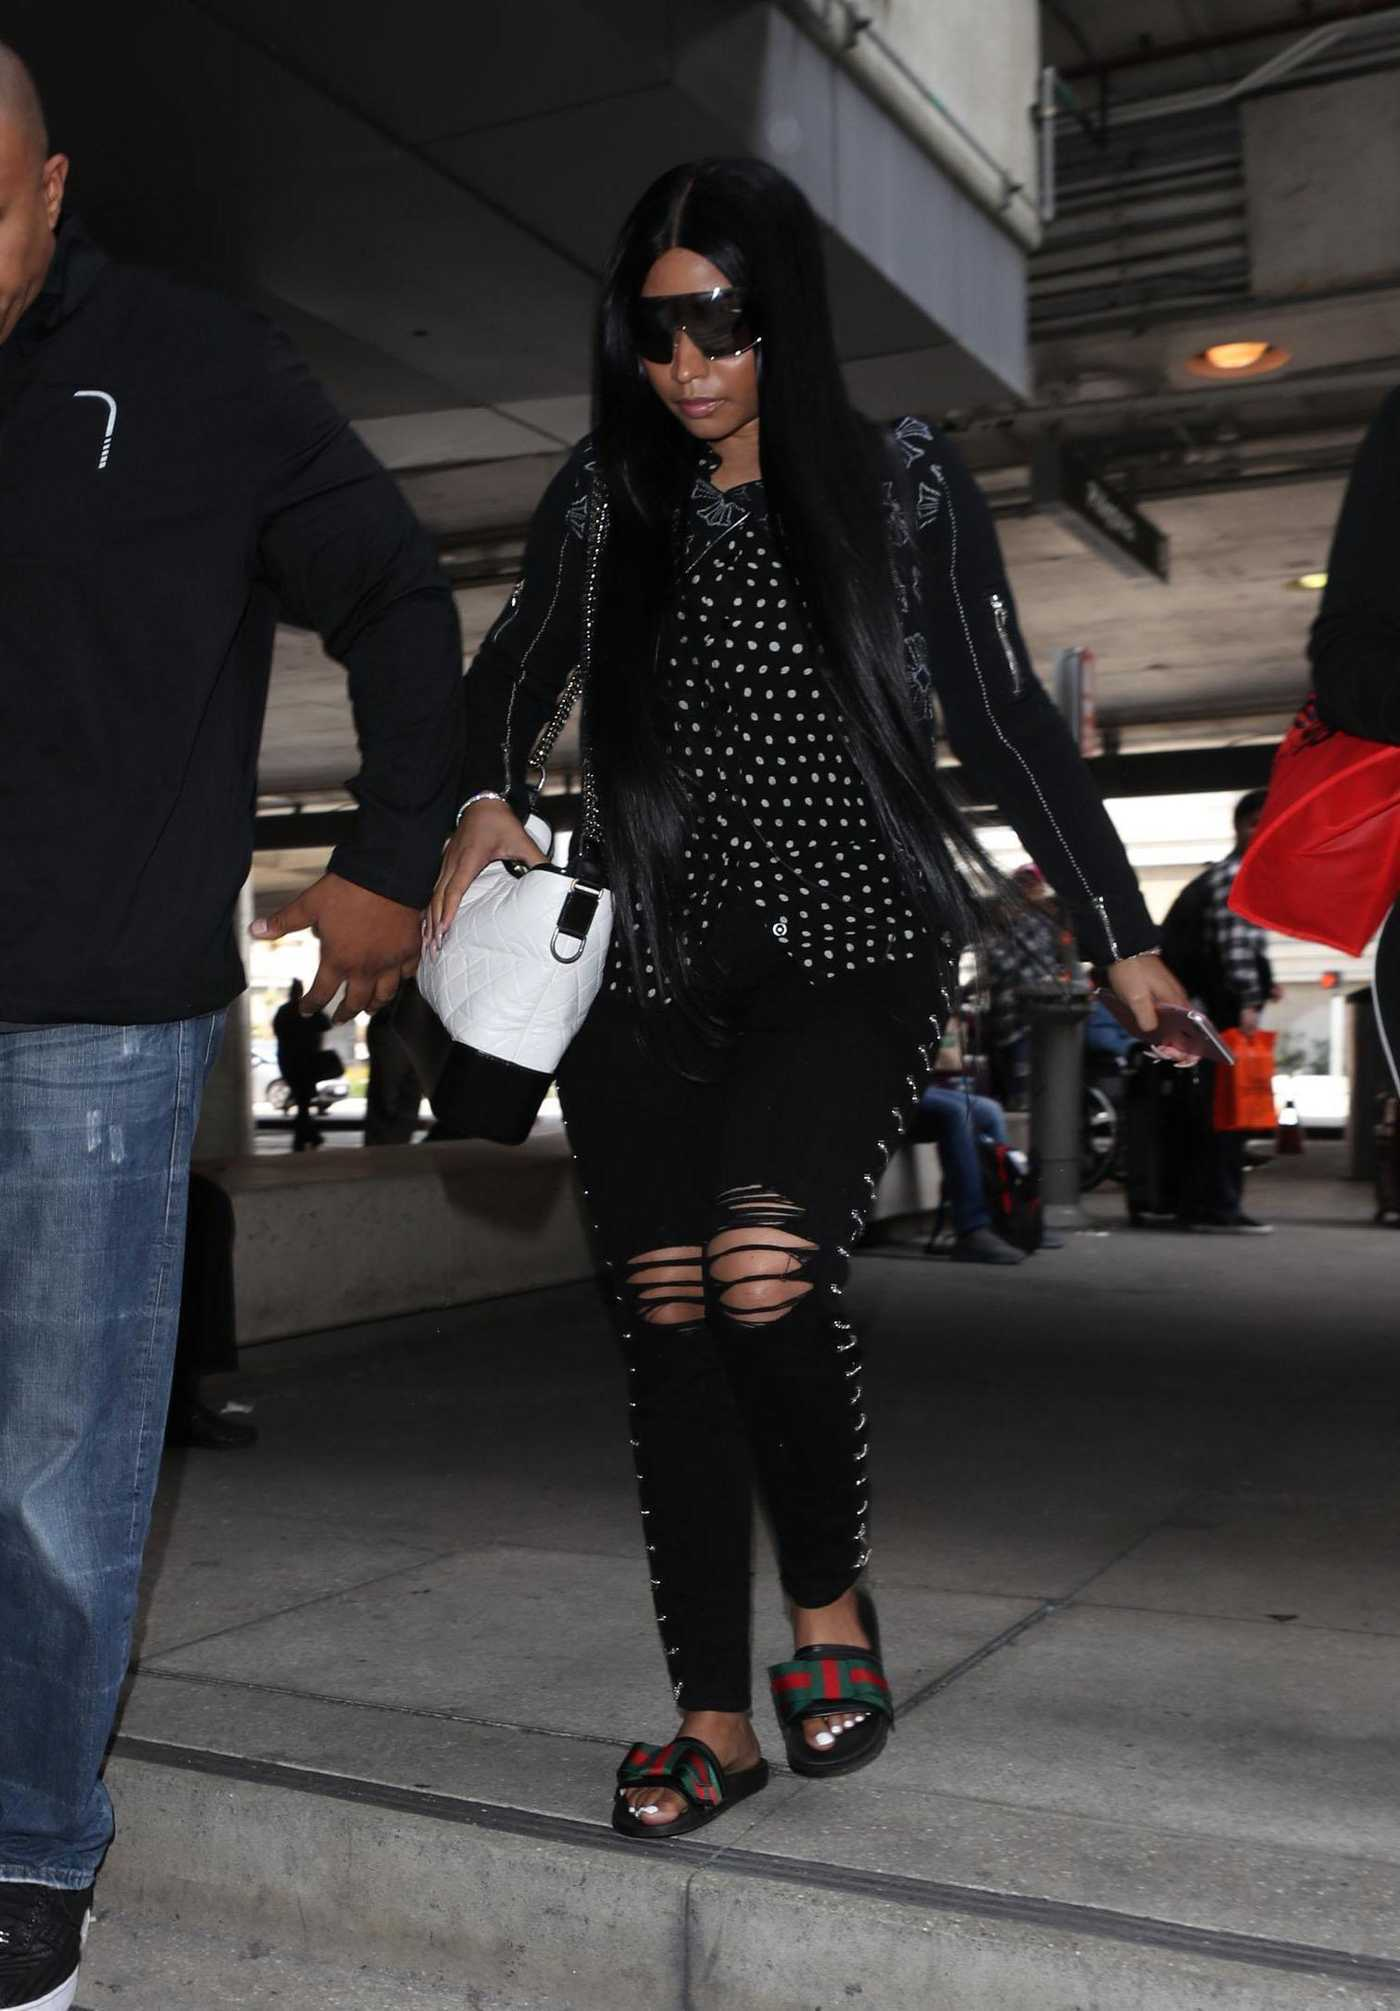 Nicki Minaj Was Spotted at LAX Airport in LA 04/03/2018